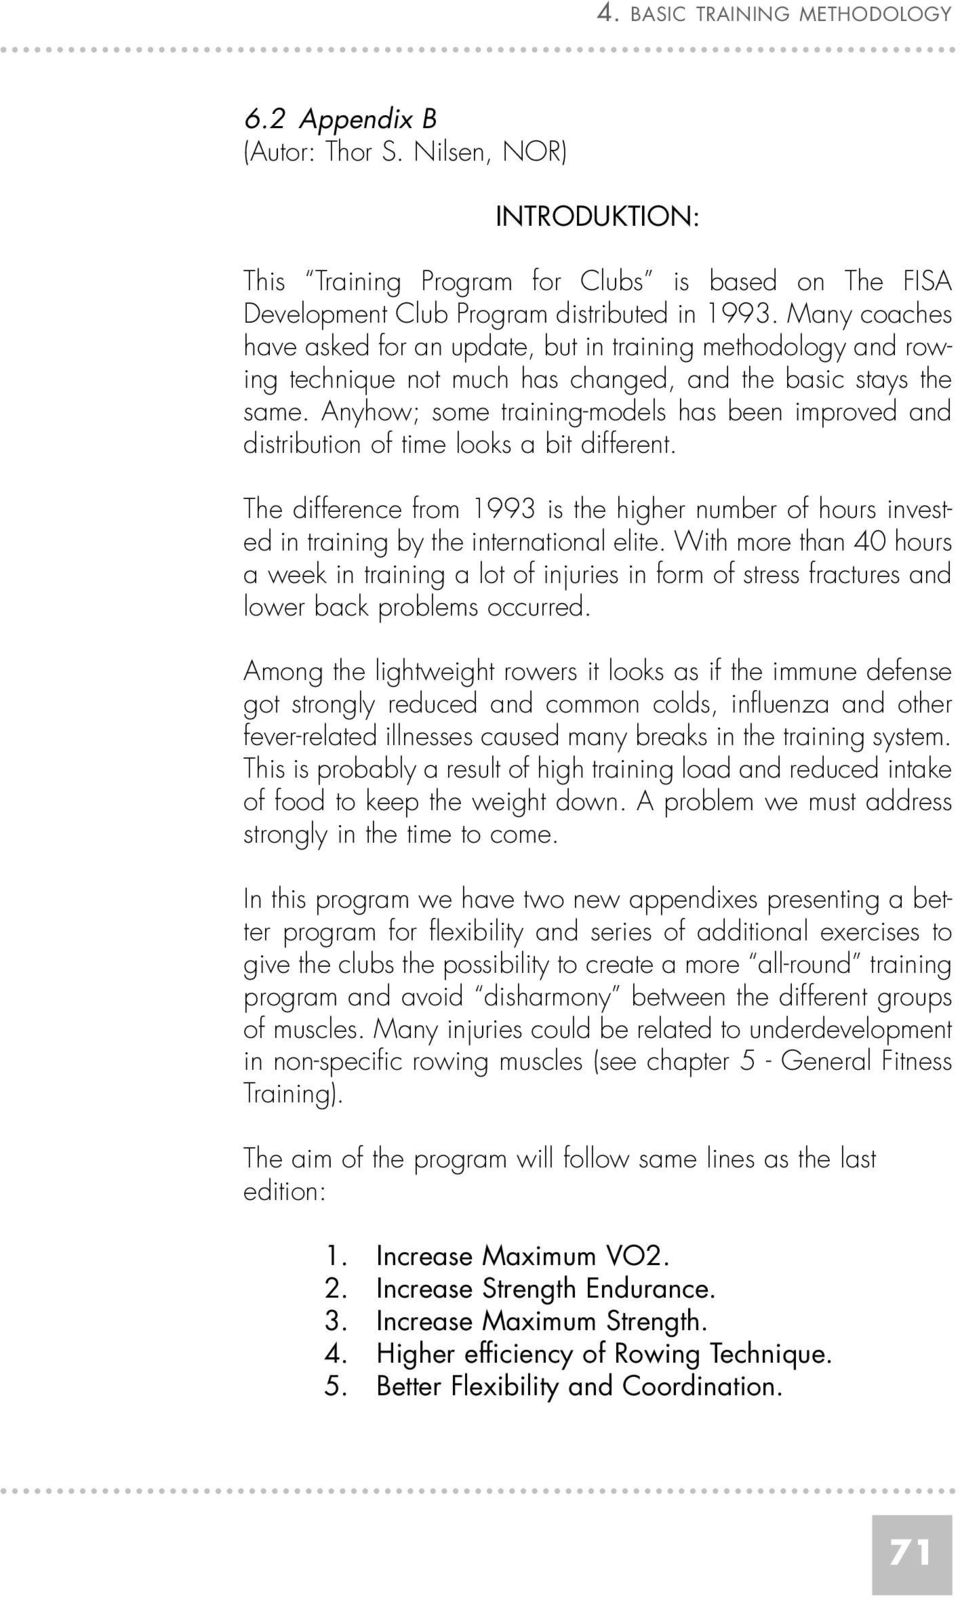 Anyhow; some training-models has been improved and distribution of time looks a bit different. The difference from 1993 is the higher number of hours invested in training by the international elite.